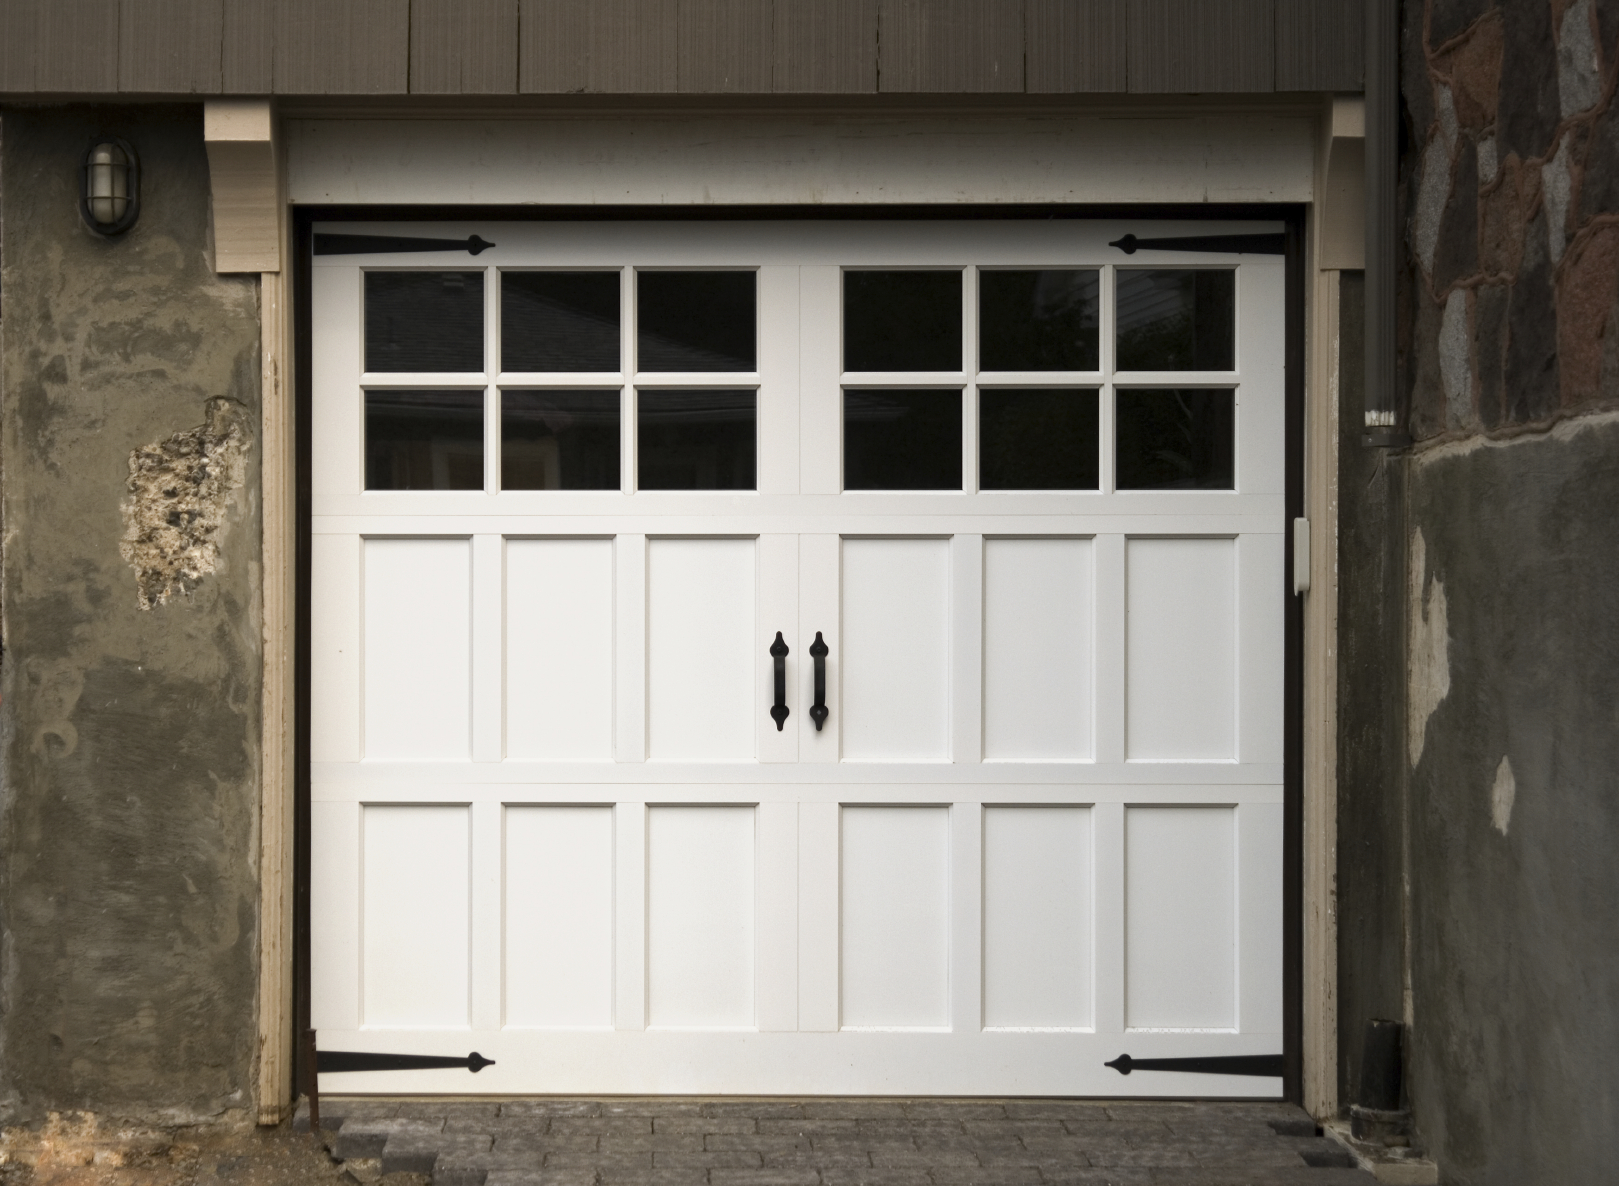 1186 #7D6A4E Carriage Style Garage Doors Carroll Garage Doors wallpaper Grarage Doors 38151619